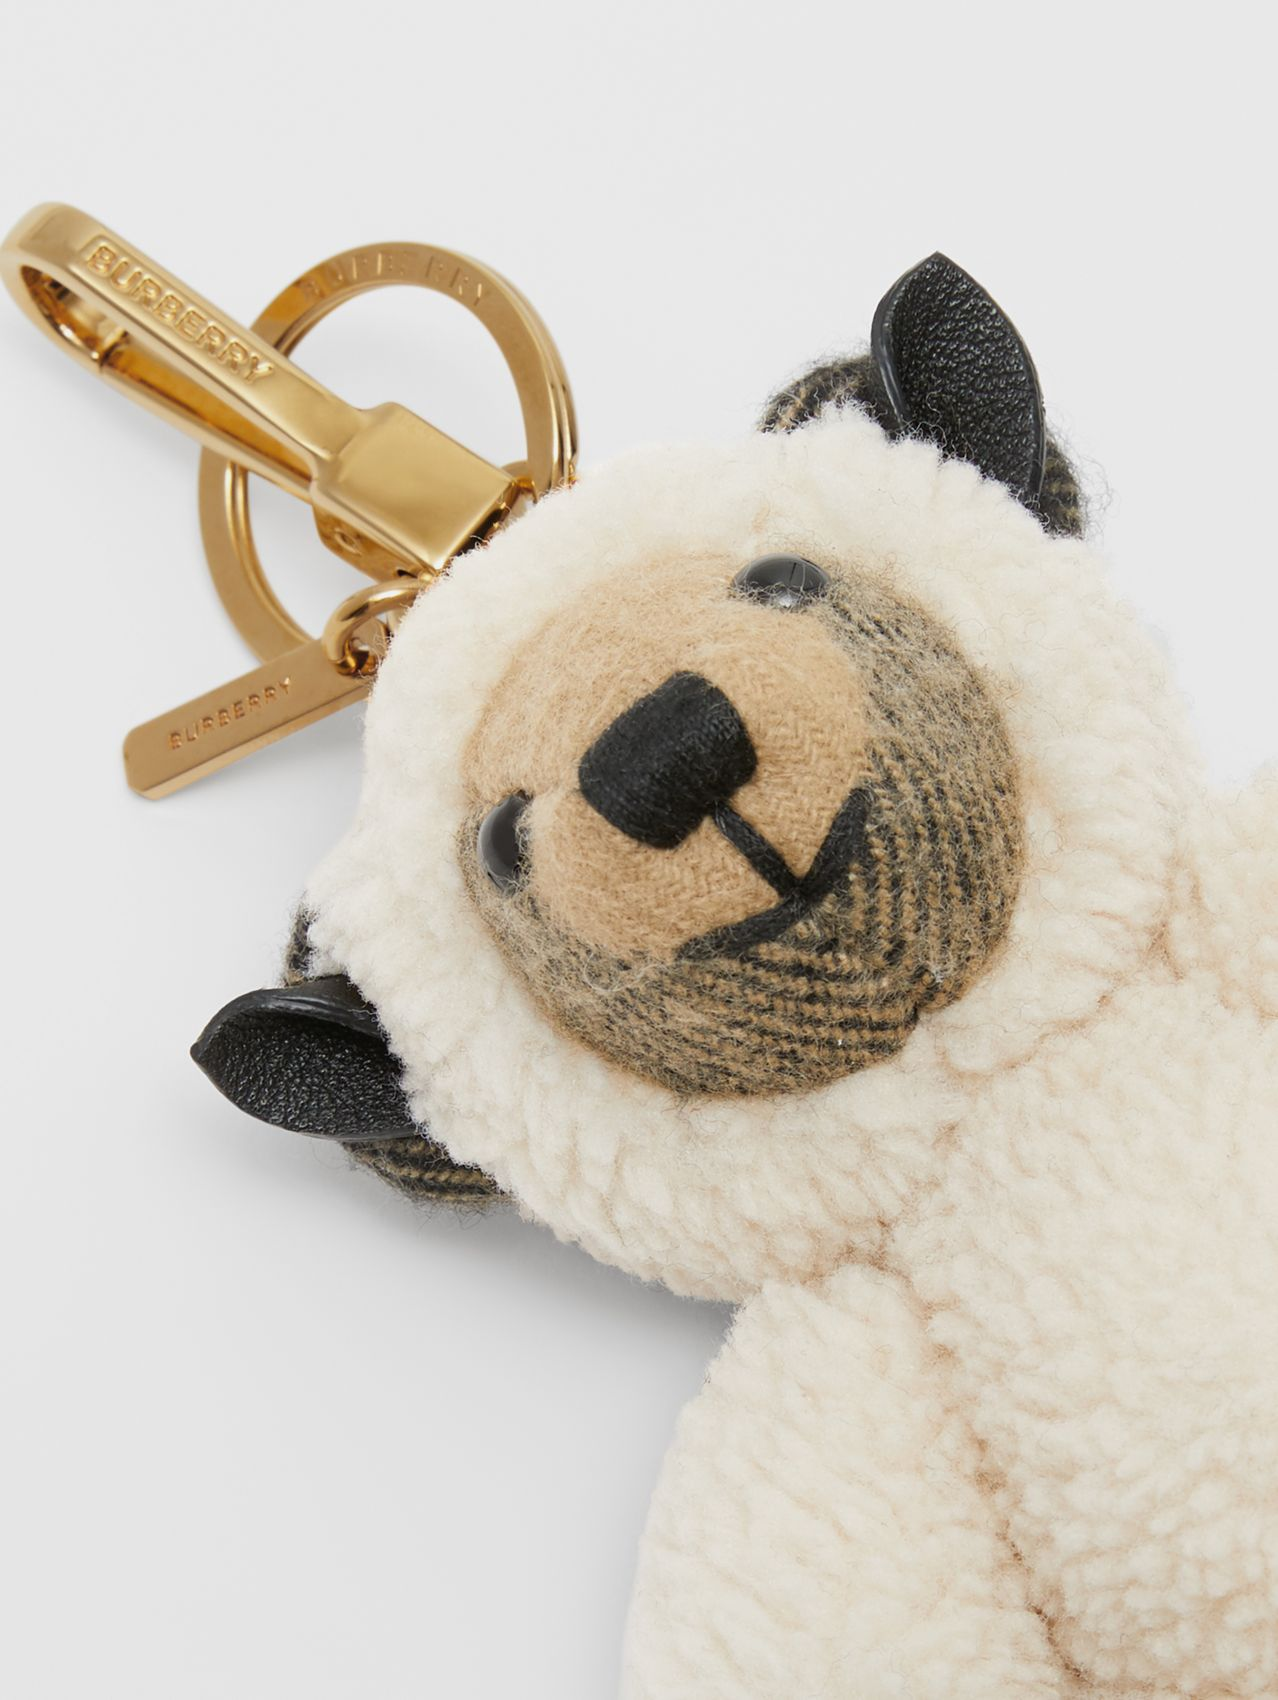 Bijou porte-clés Thomas Bear en costume de mouton in Beige D'archive